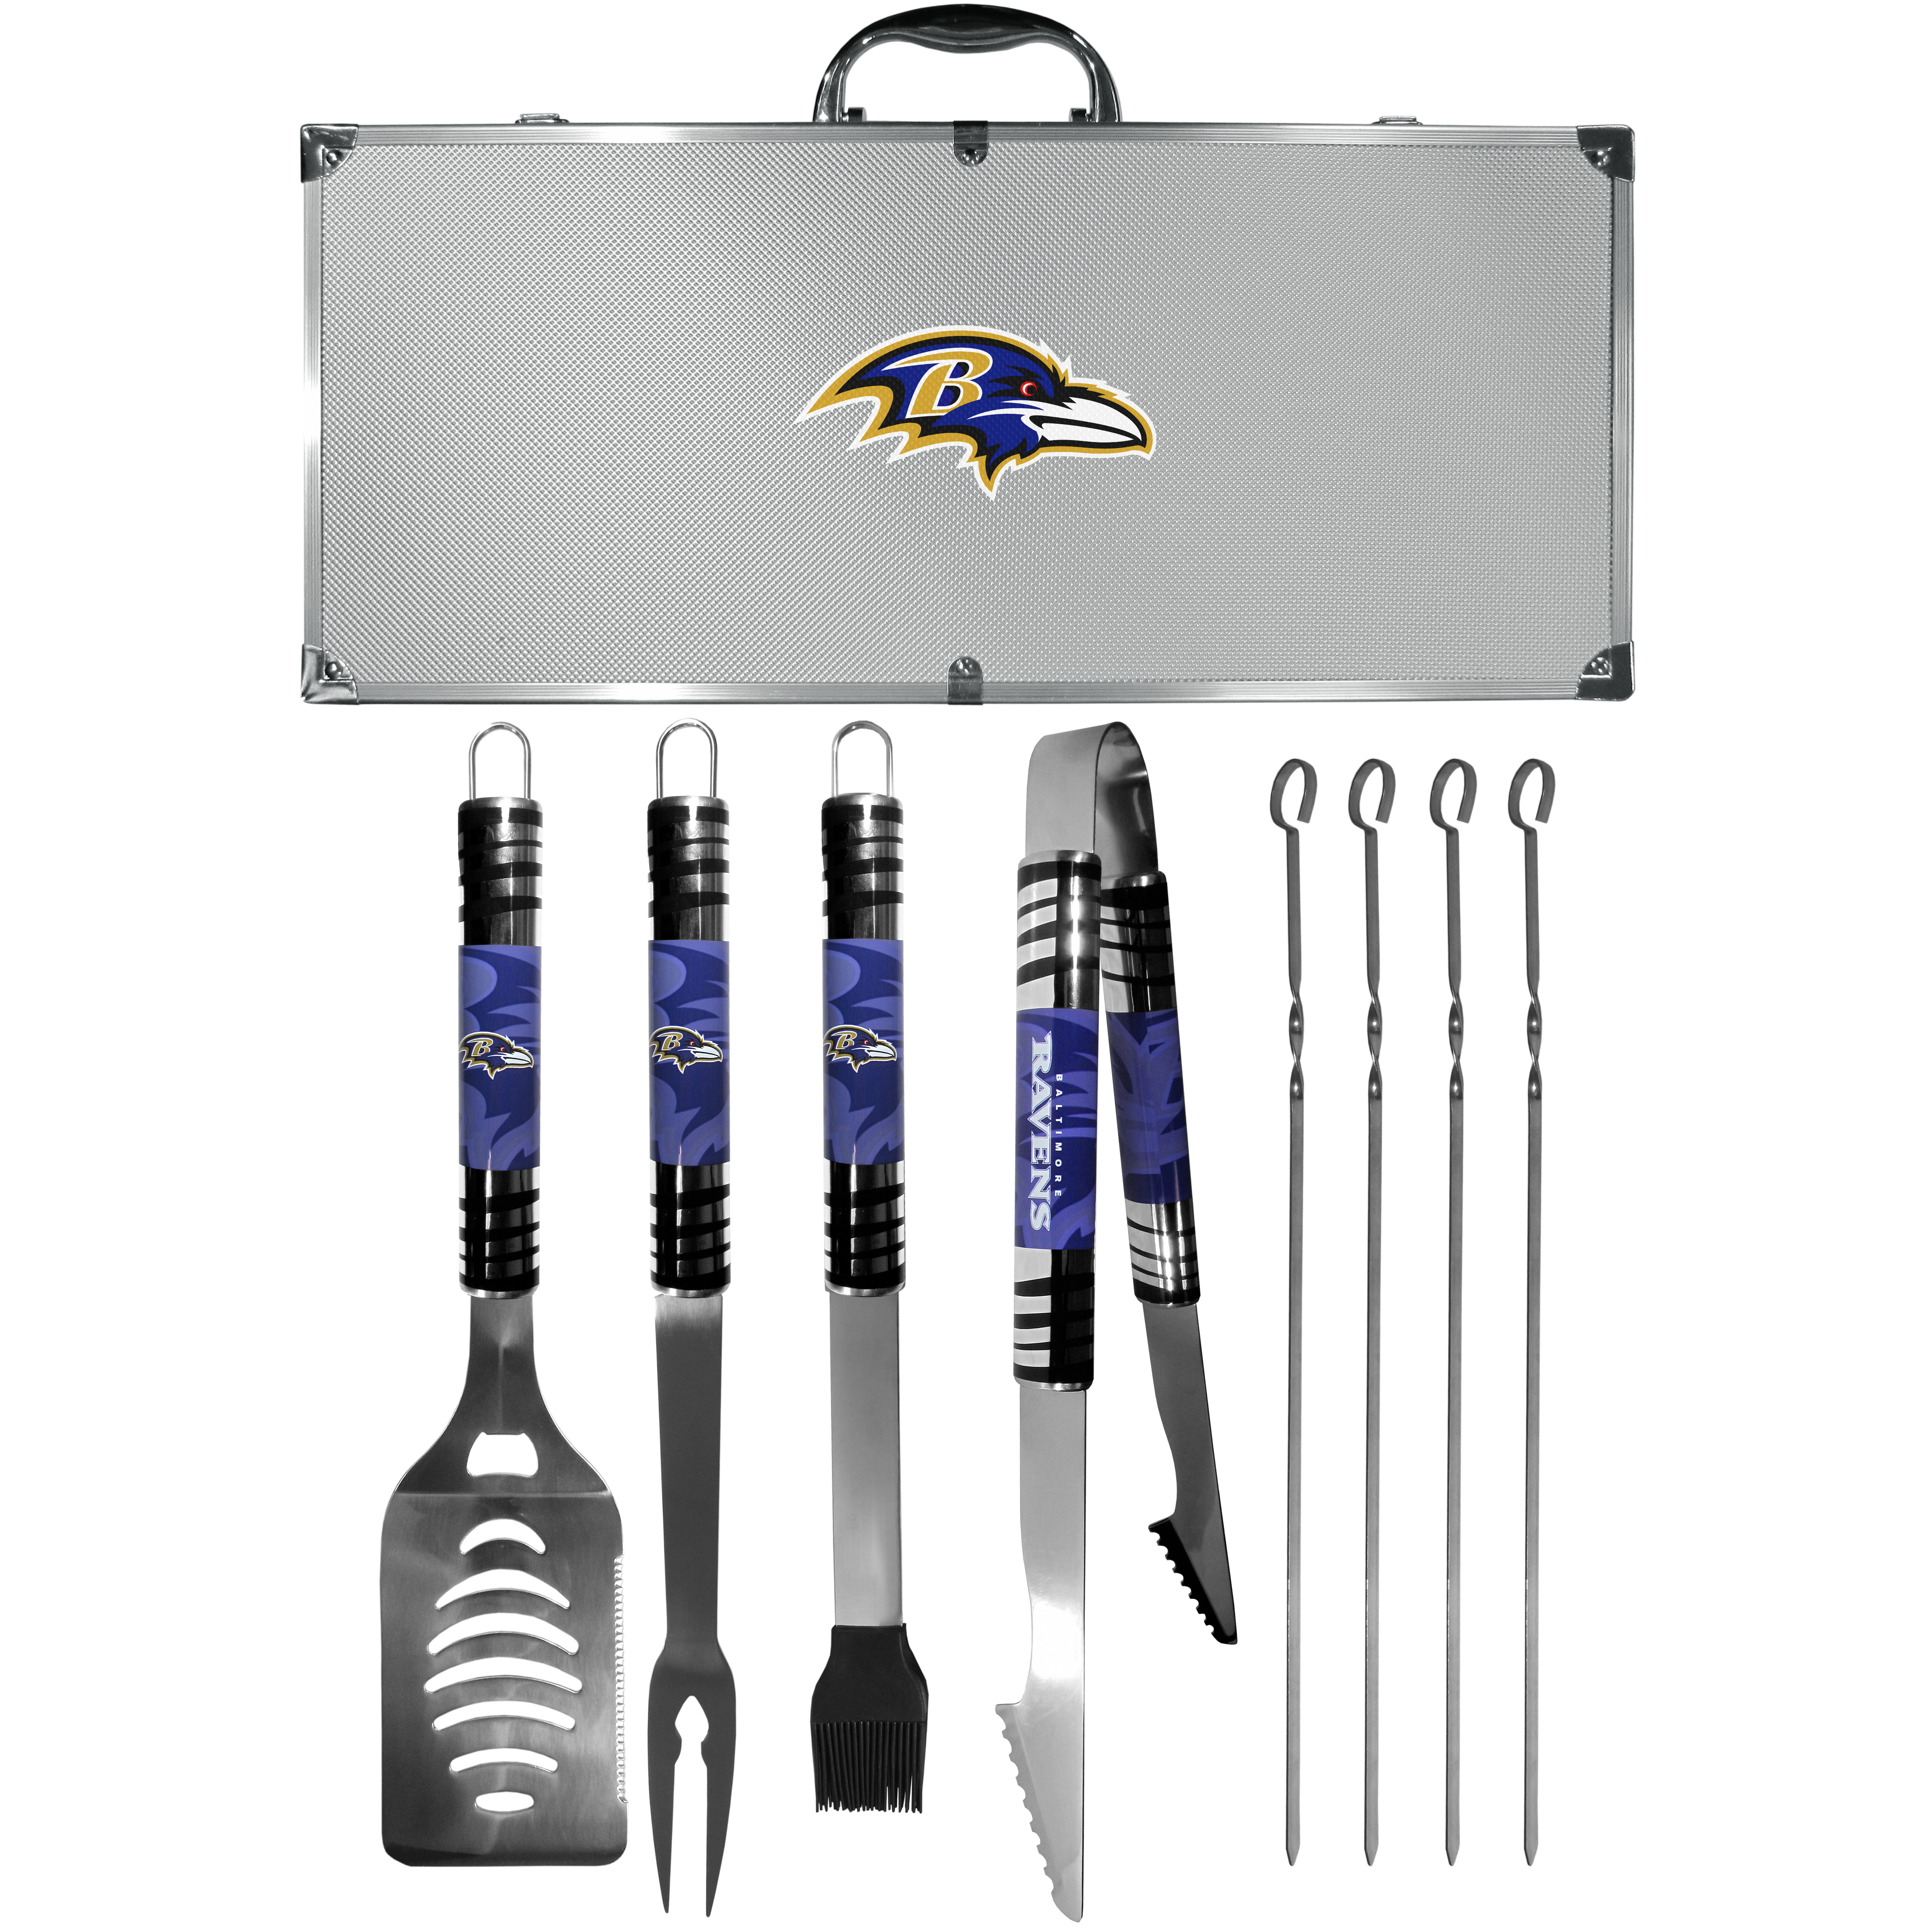 Baltimore Ravens 8 pc Tailgater BBQ Set - This is the ultimate Baltimore Ravens tailgate accessory! The high quality, 420 grade stainless steel tools are durable and well-made enough to make even the pickiest grill master smile. This complete grill accessory kit includes; 4 skewers, spatula with bottle opener and serrated knife edge, basting brush, tongs and a fork. The 18 inch metal carrying case is perfect for great outdoor use making grilling an ease while camping, tailgating or while having a game day party on your patio. The tools are 17 inches long and feature vivid team graphics. The metal case features a large team emblem with exceptional detail. This high-end men's gift is sure to be a hit as a present on Father's Day or Christmas.